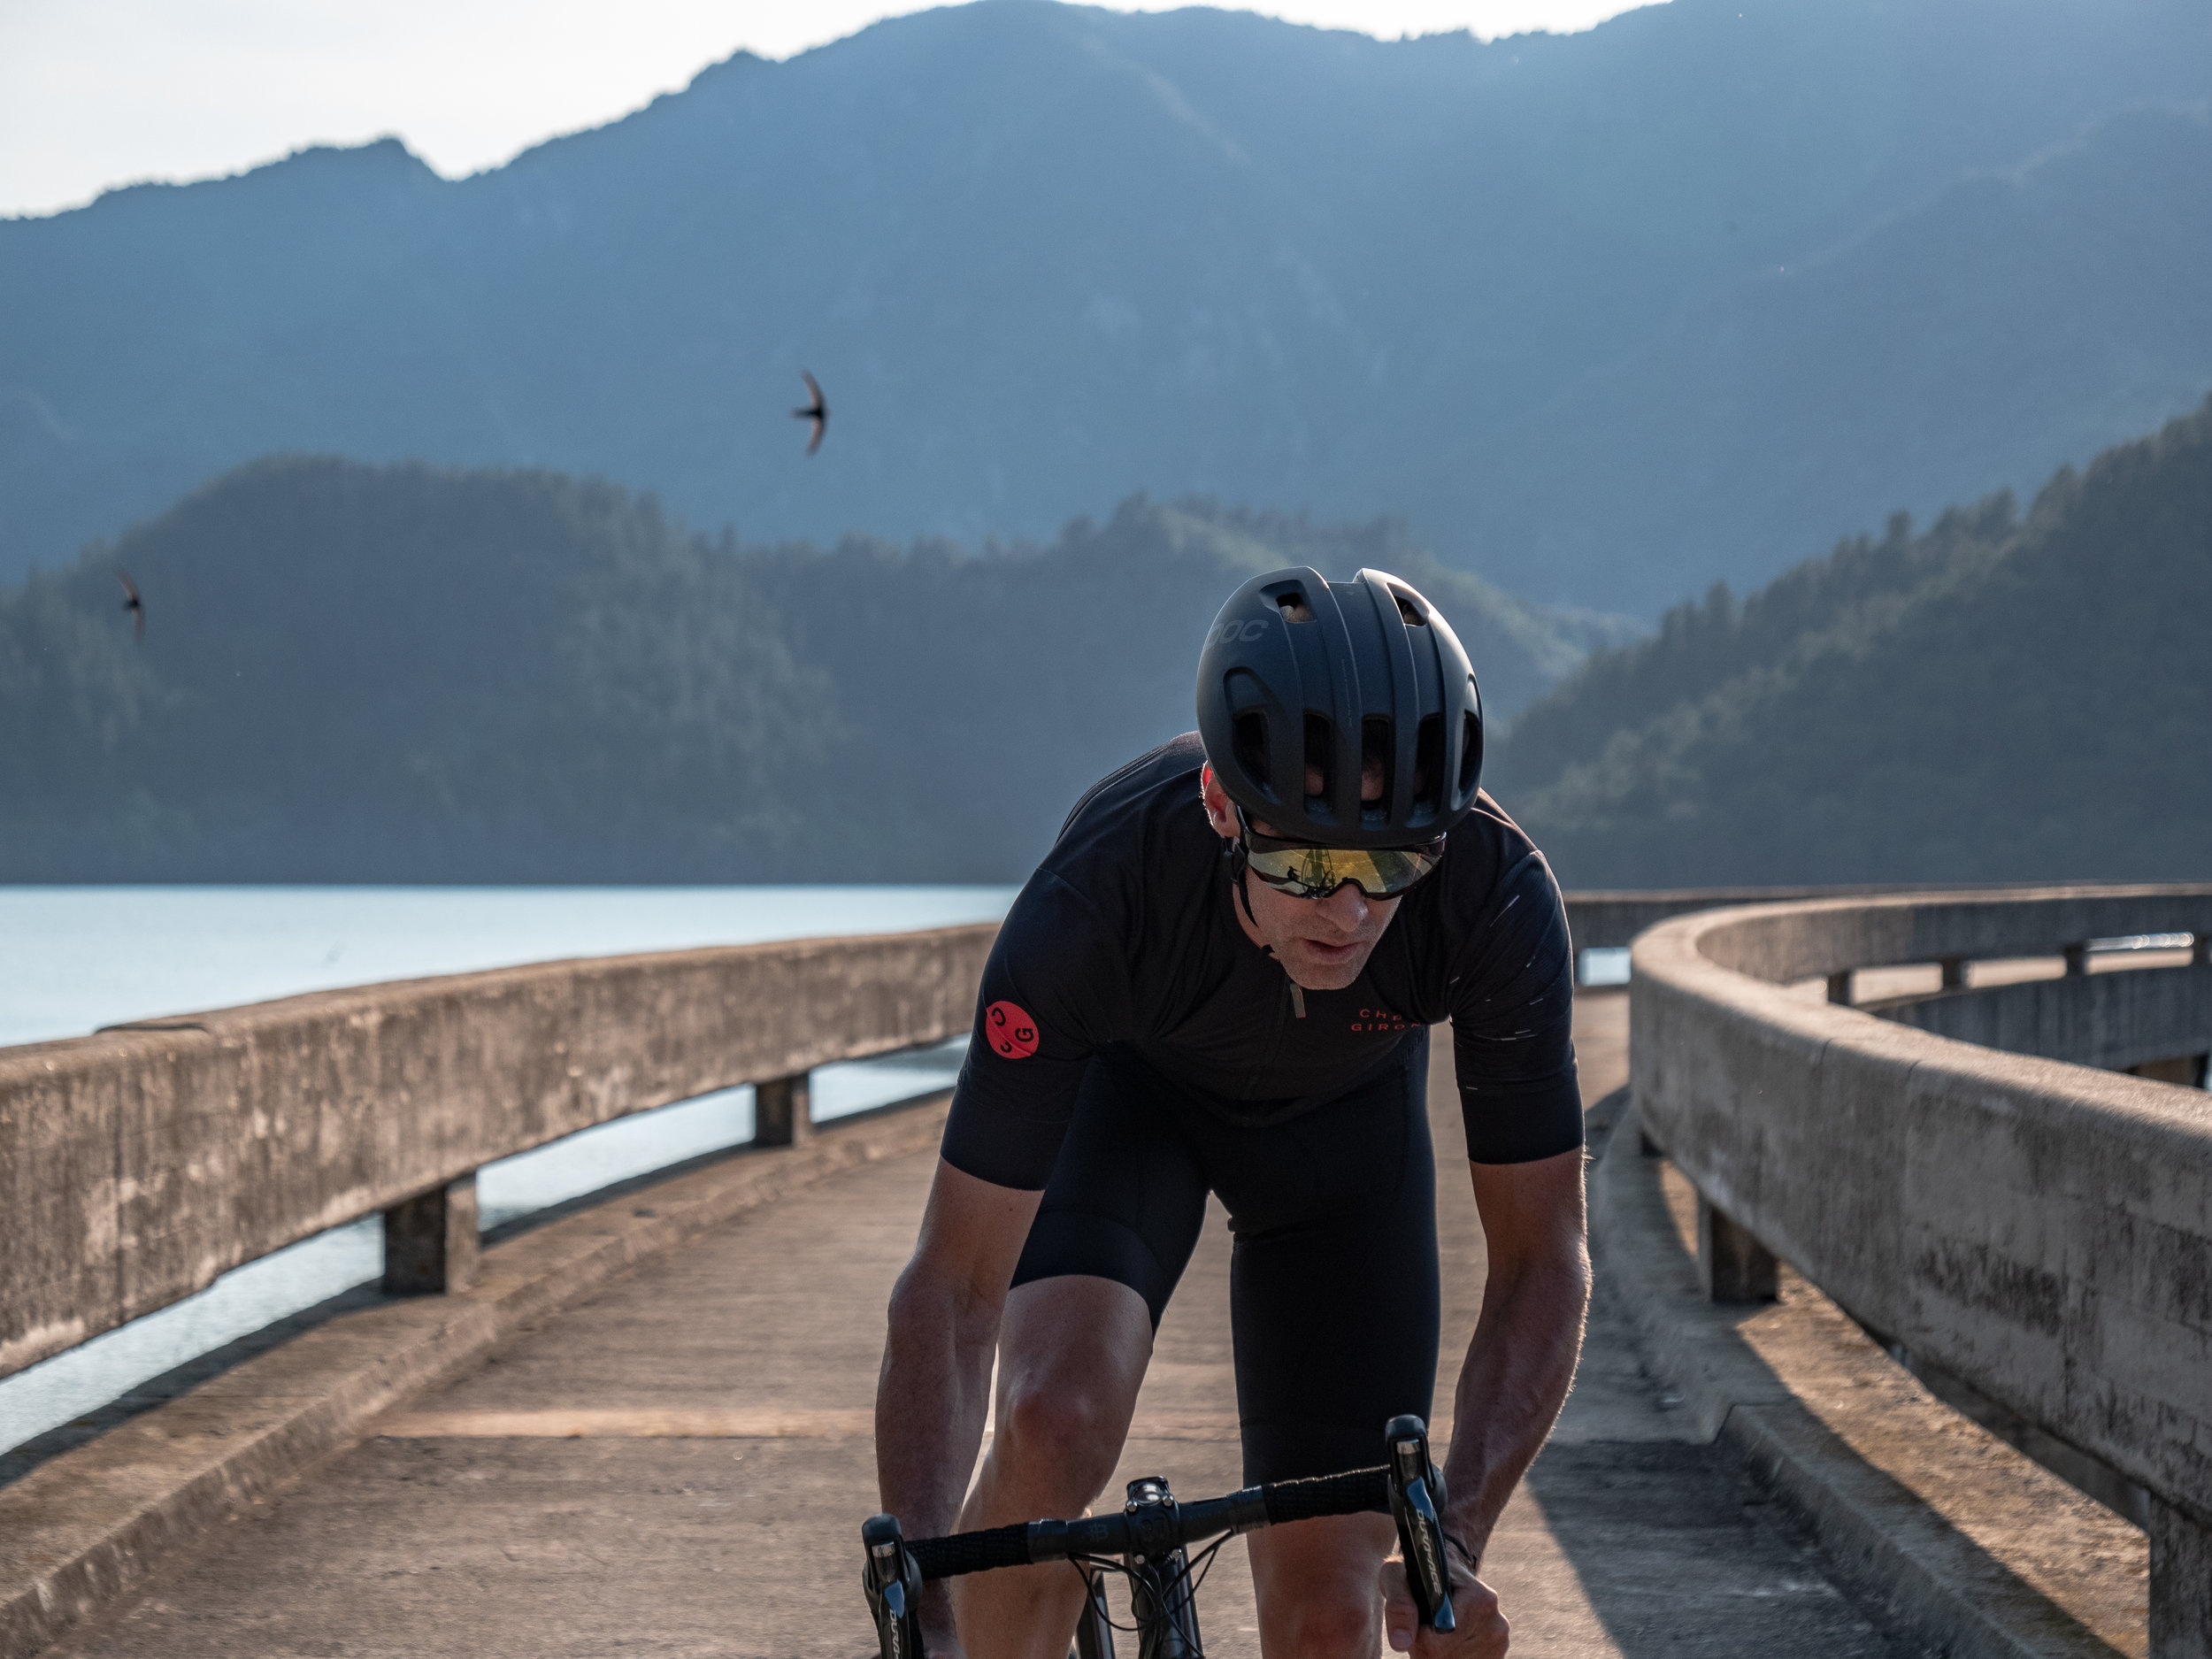 David Millar named the collection after the city where he now lives